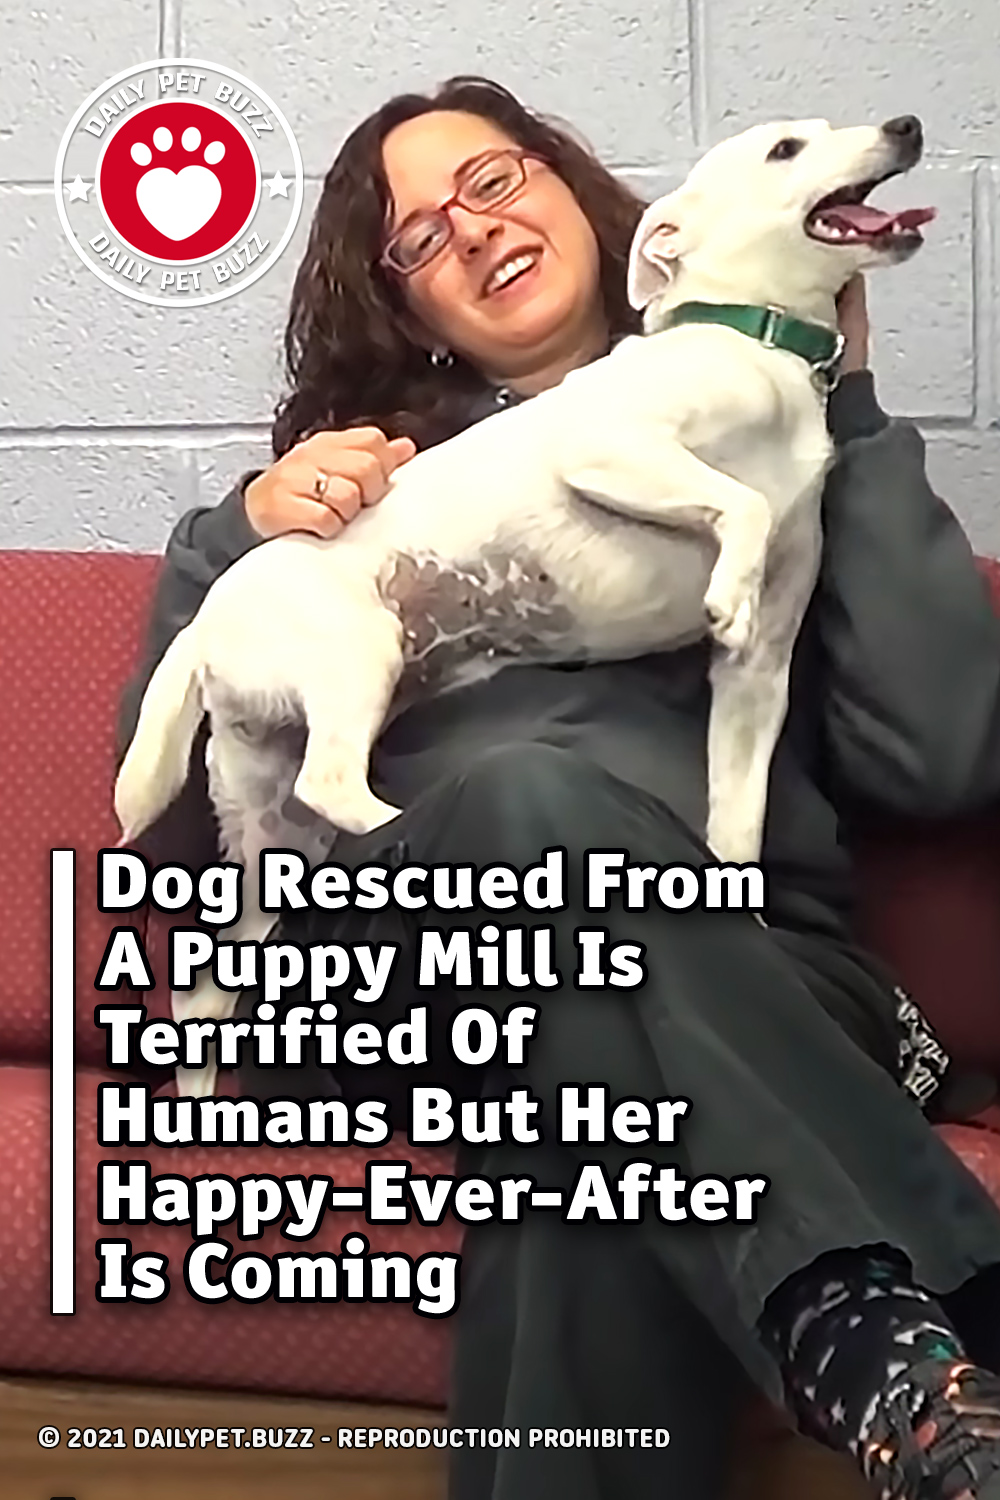 Dog Rescued From A Puppy Mill Is Terrified Of Humans But Her Happy-Ever-After Is Coming